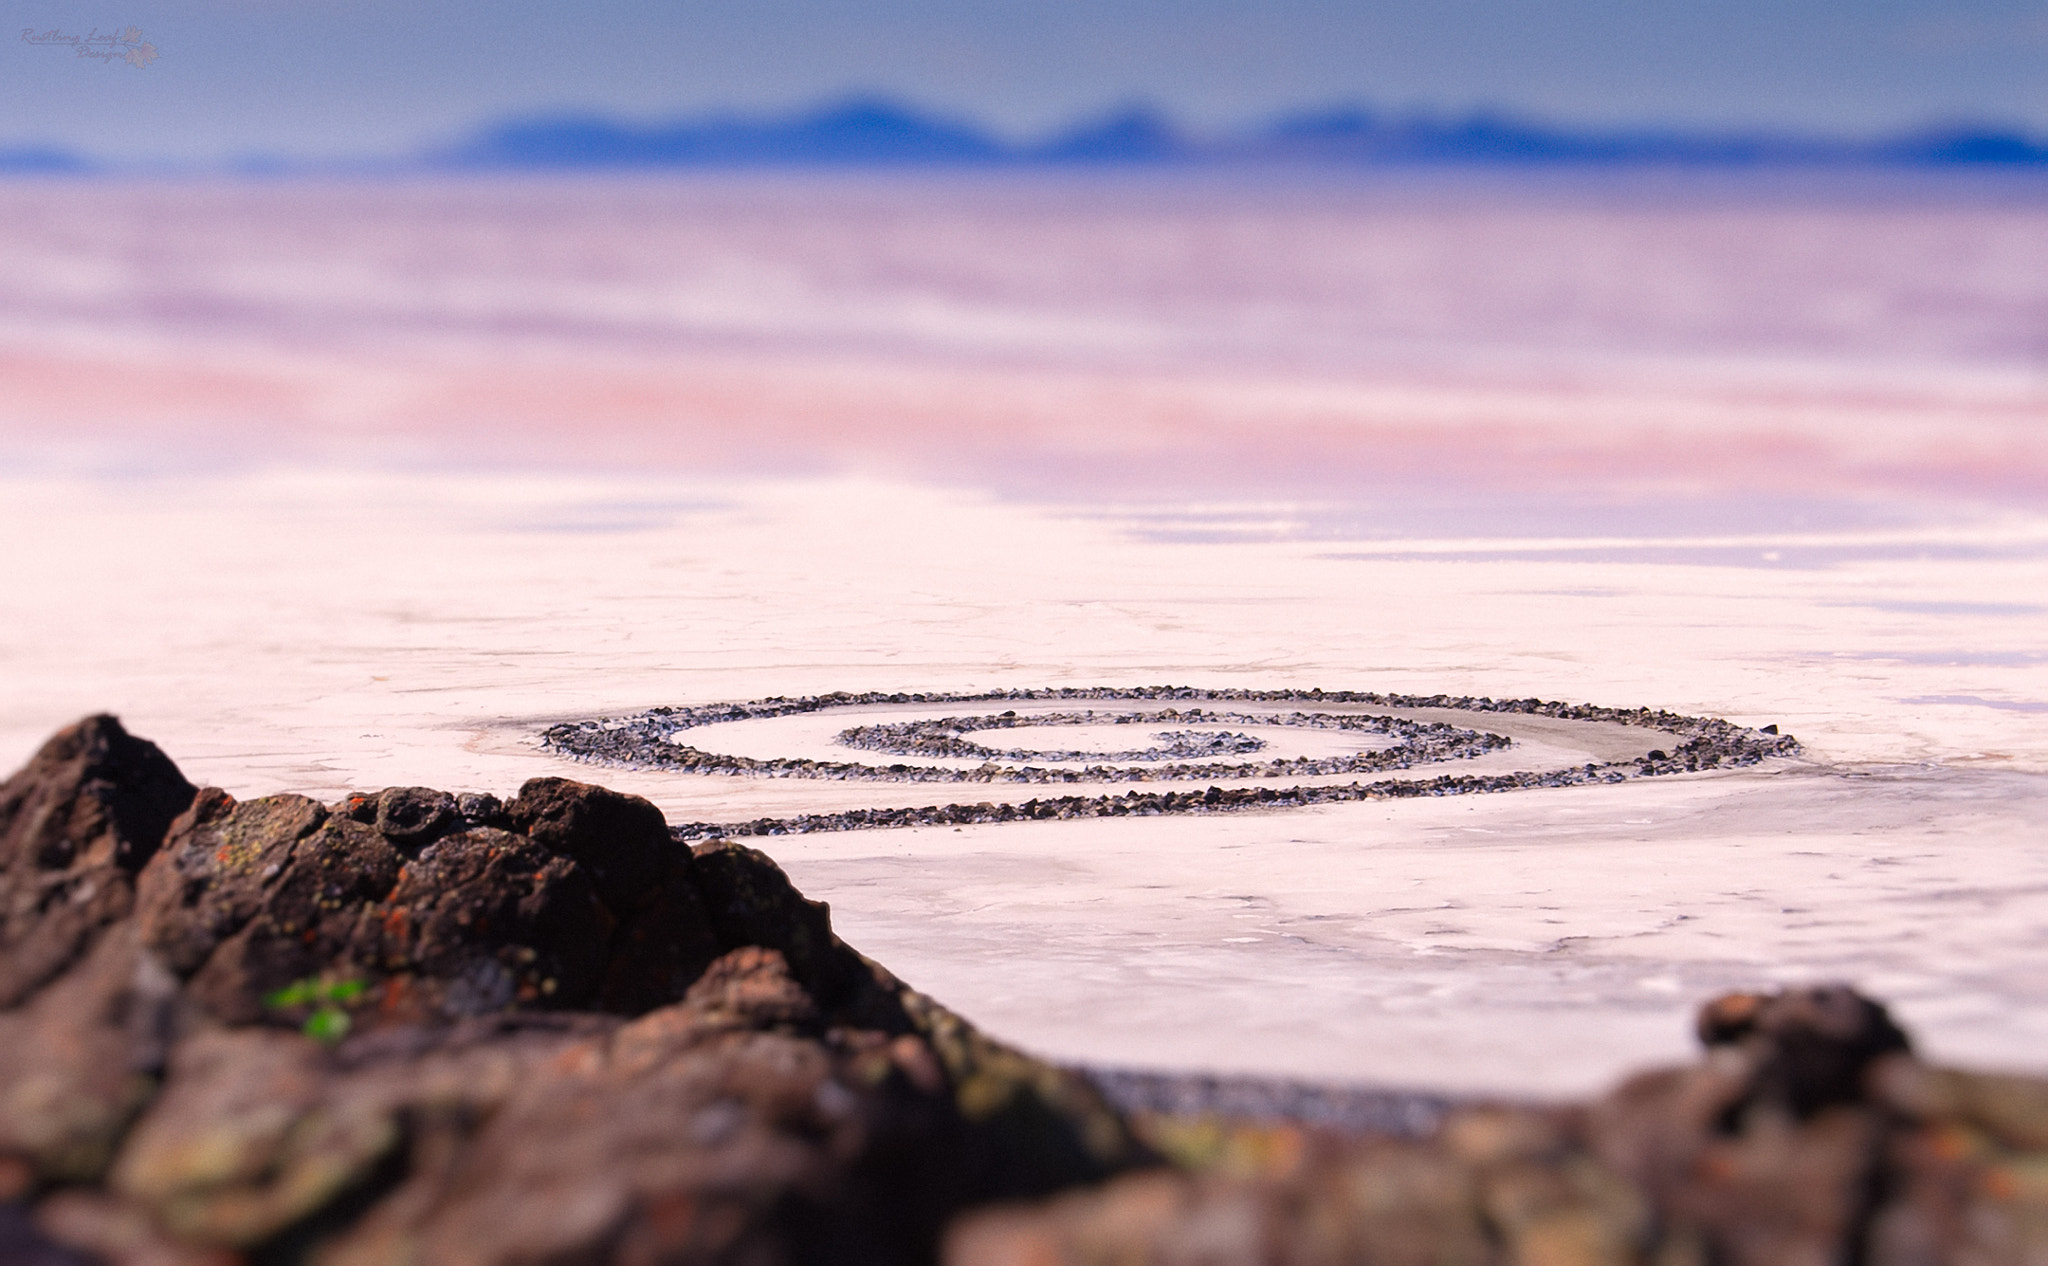 Photograph Spiral Jetty by Scott Stringham on 500px